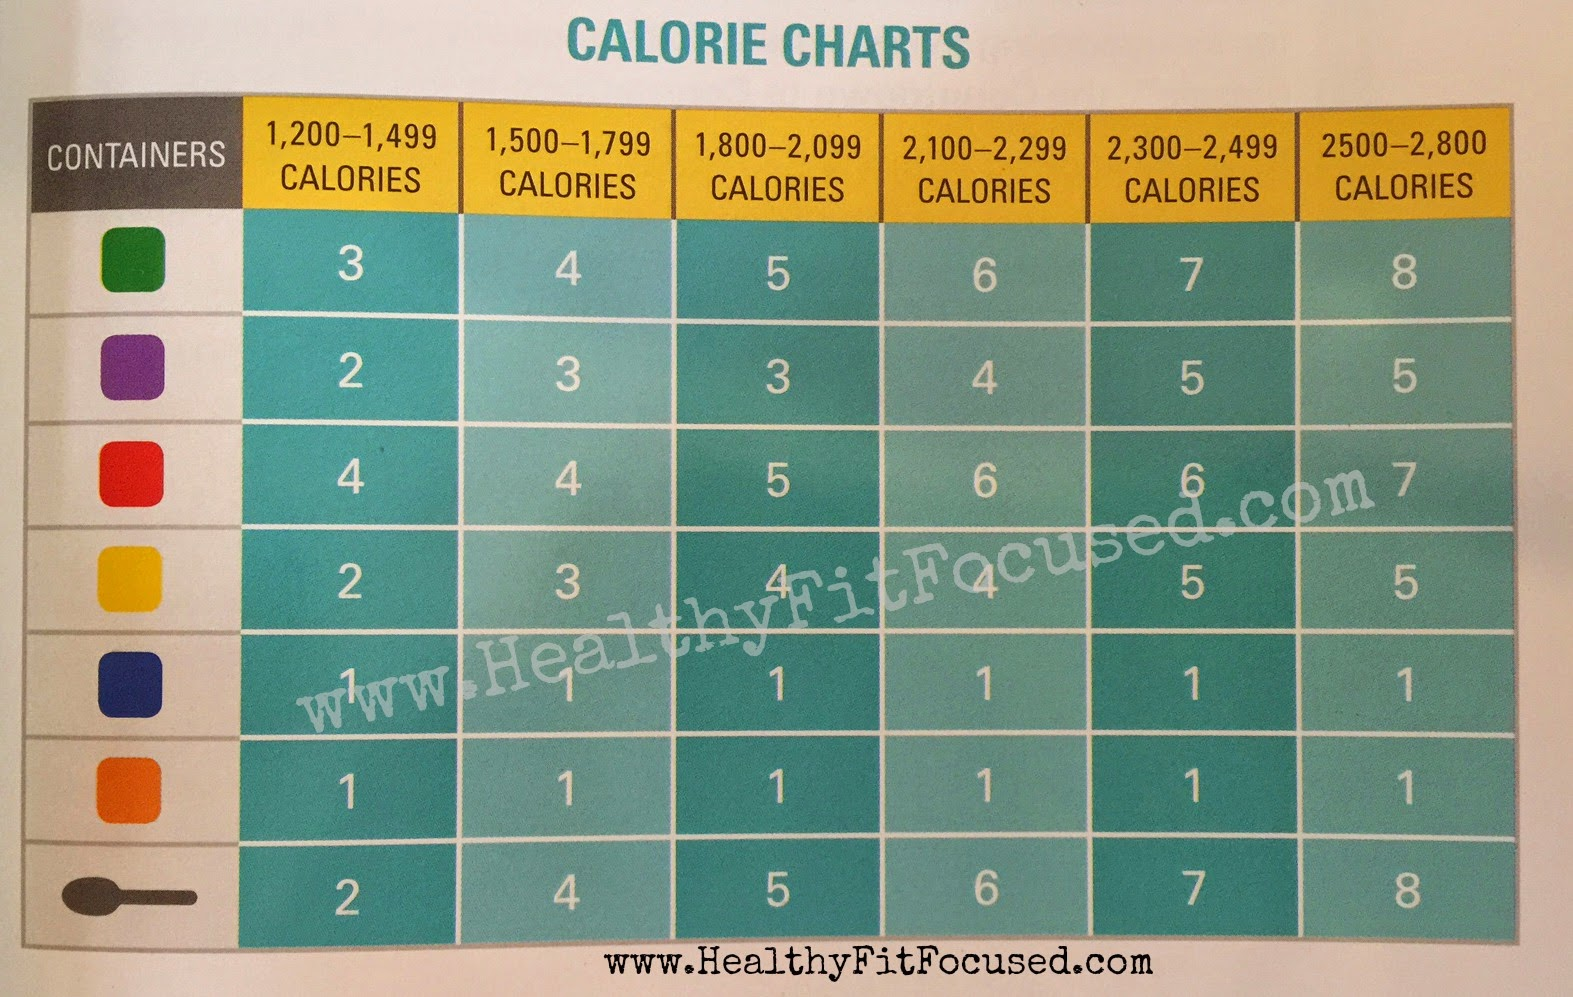 How to meal plan for the day fix and extreme step also healthy fit focused rh healthyfitfocused